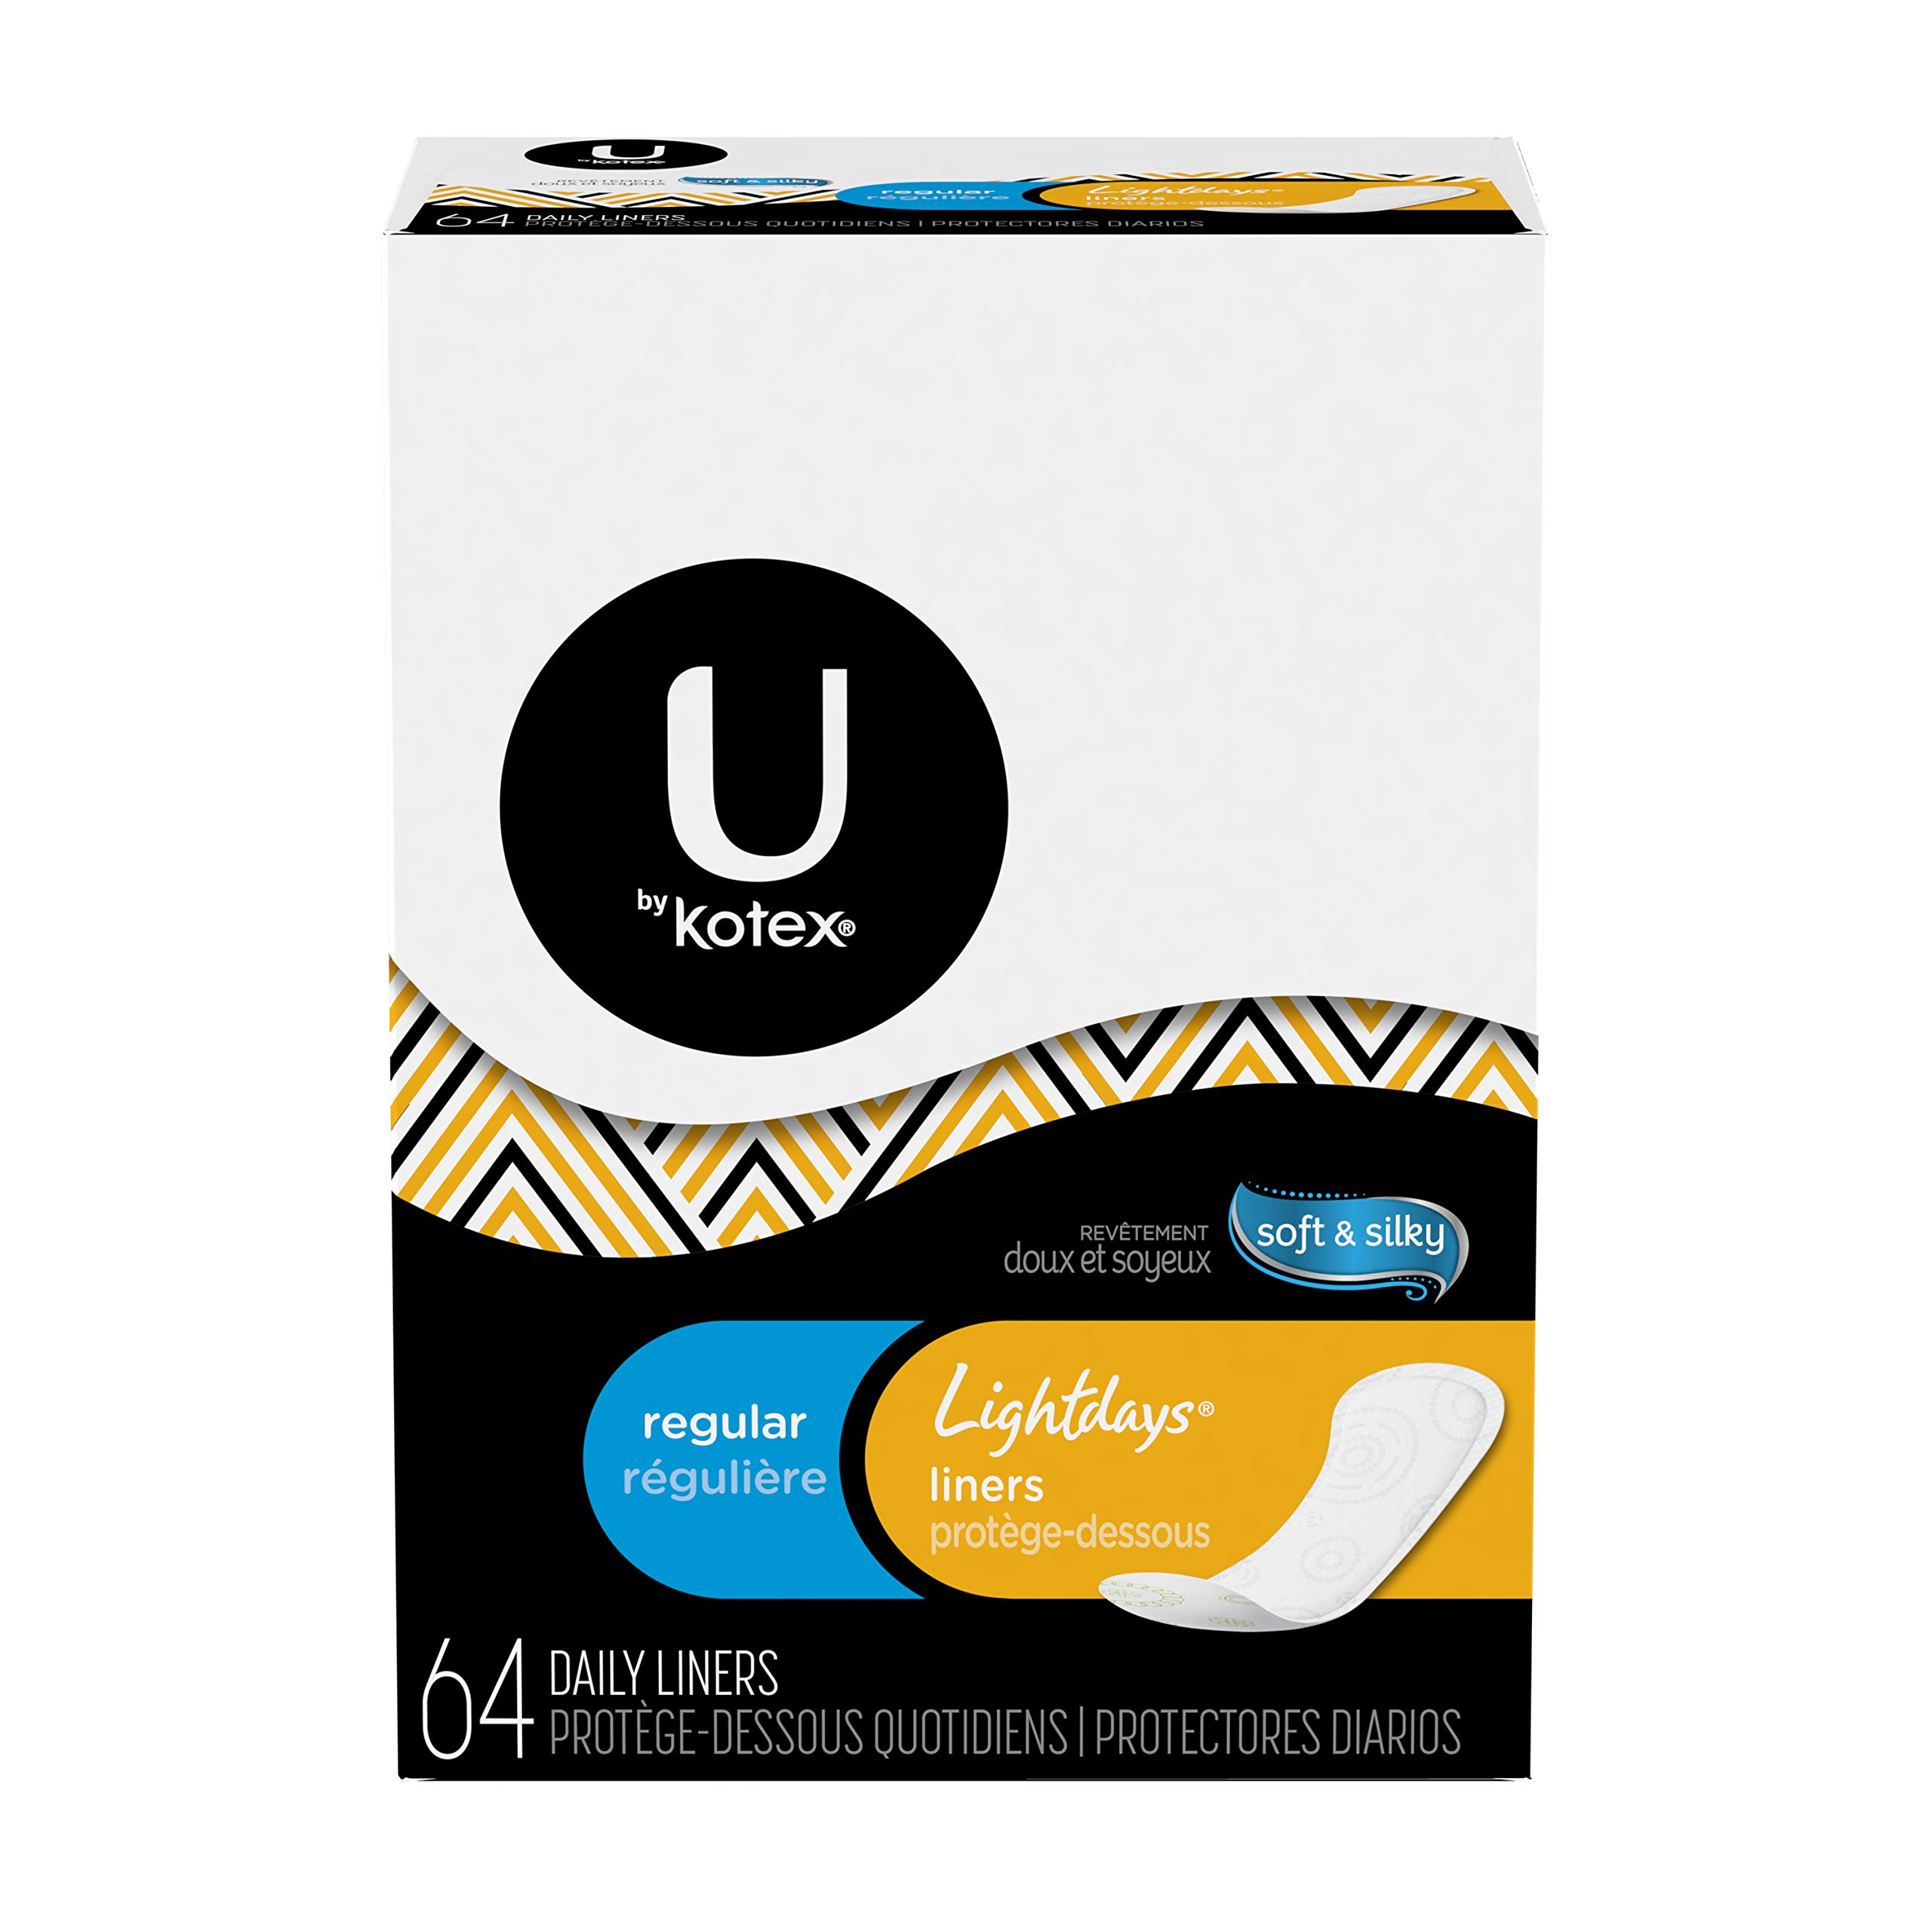 U By Kotex Regular Light Days Liners, 64 Count (pack Of 8)